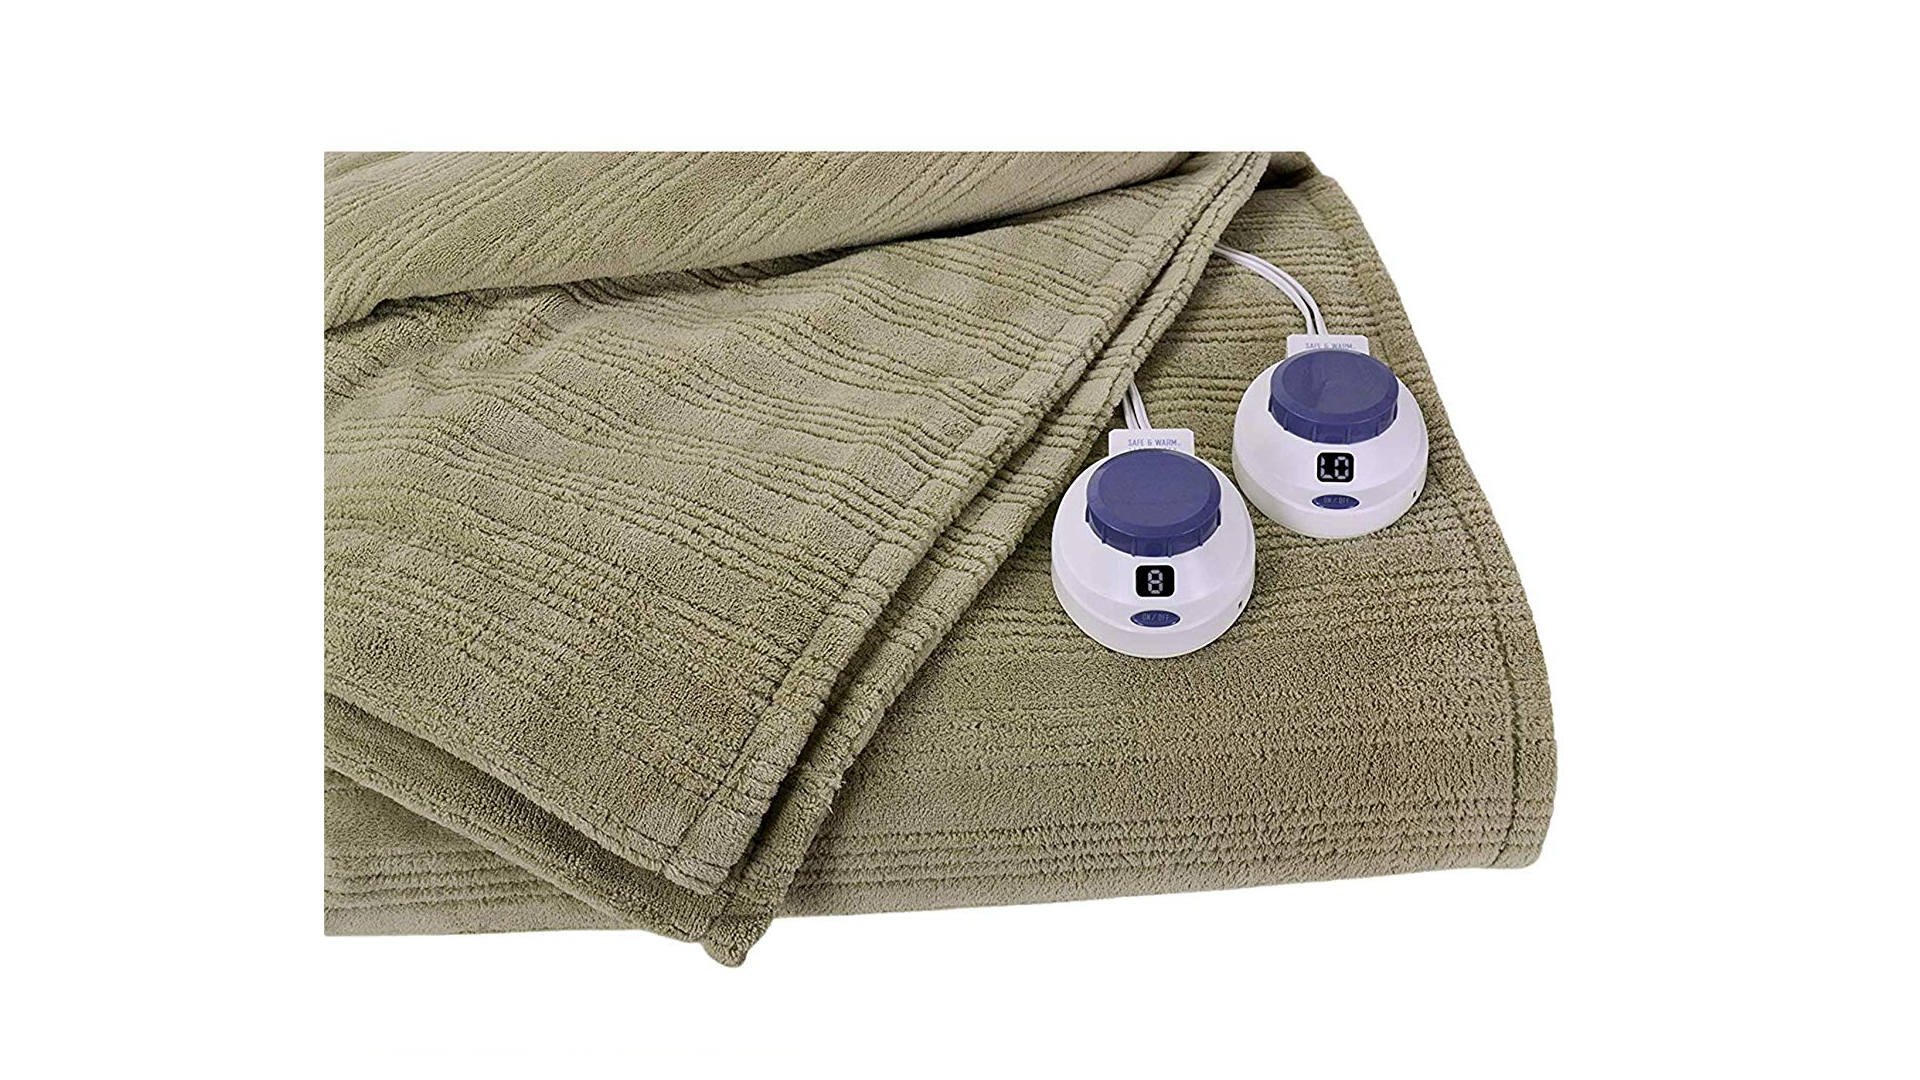 The Perfect Fit SoftHeat electric blanket